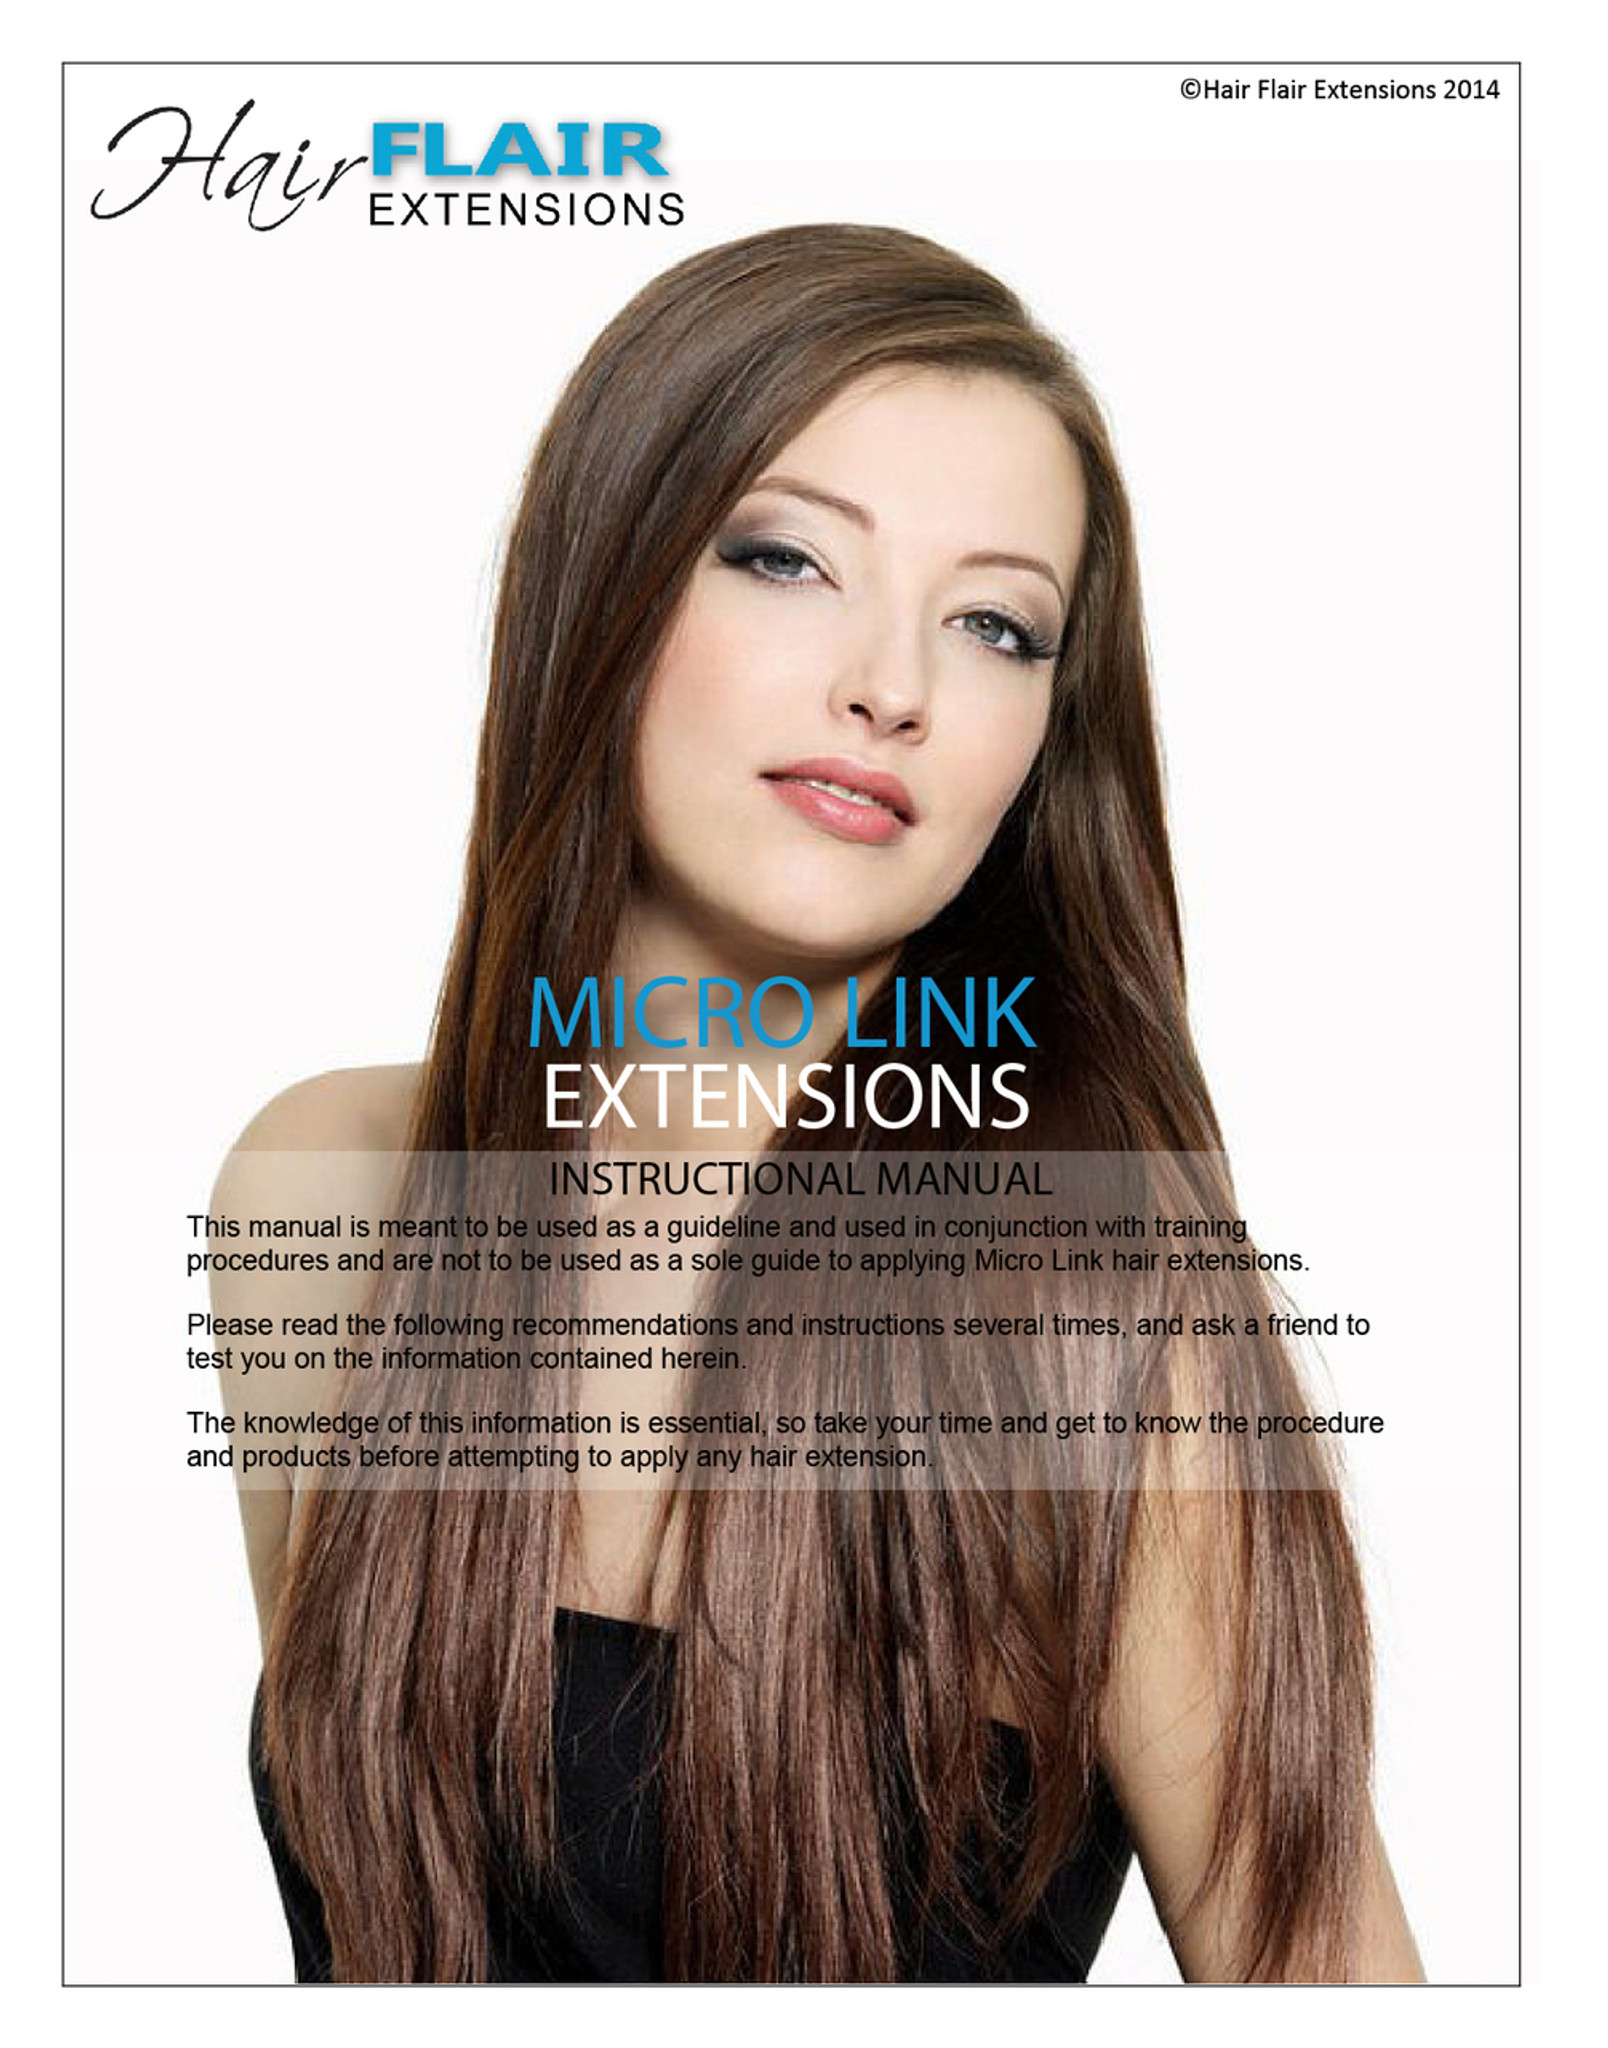 Micro Link Extensions Manual Hair Flair Extensions